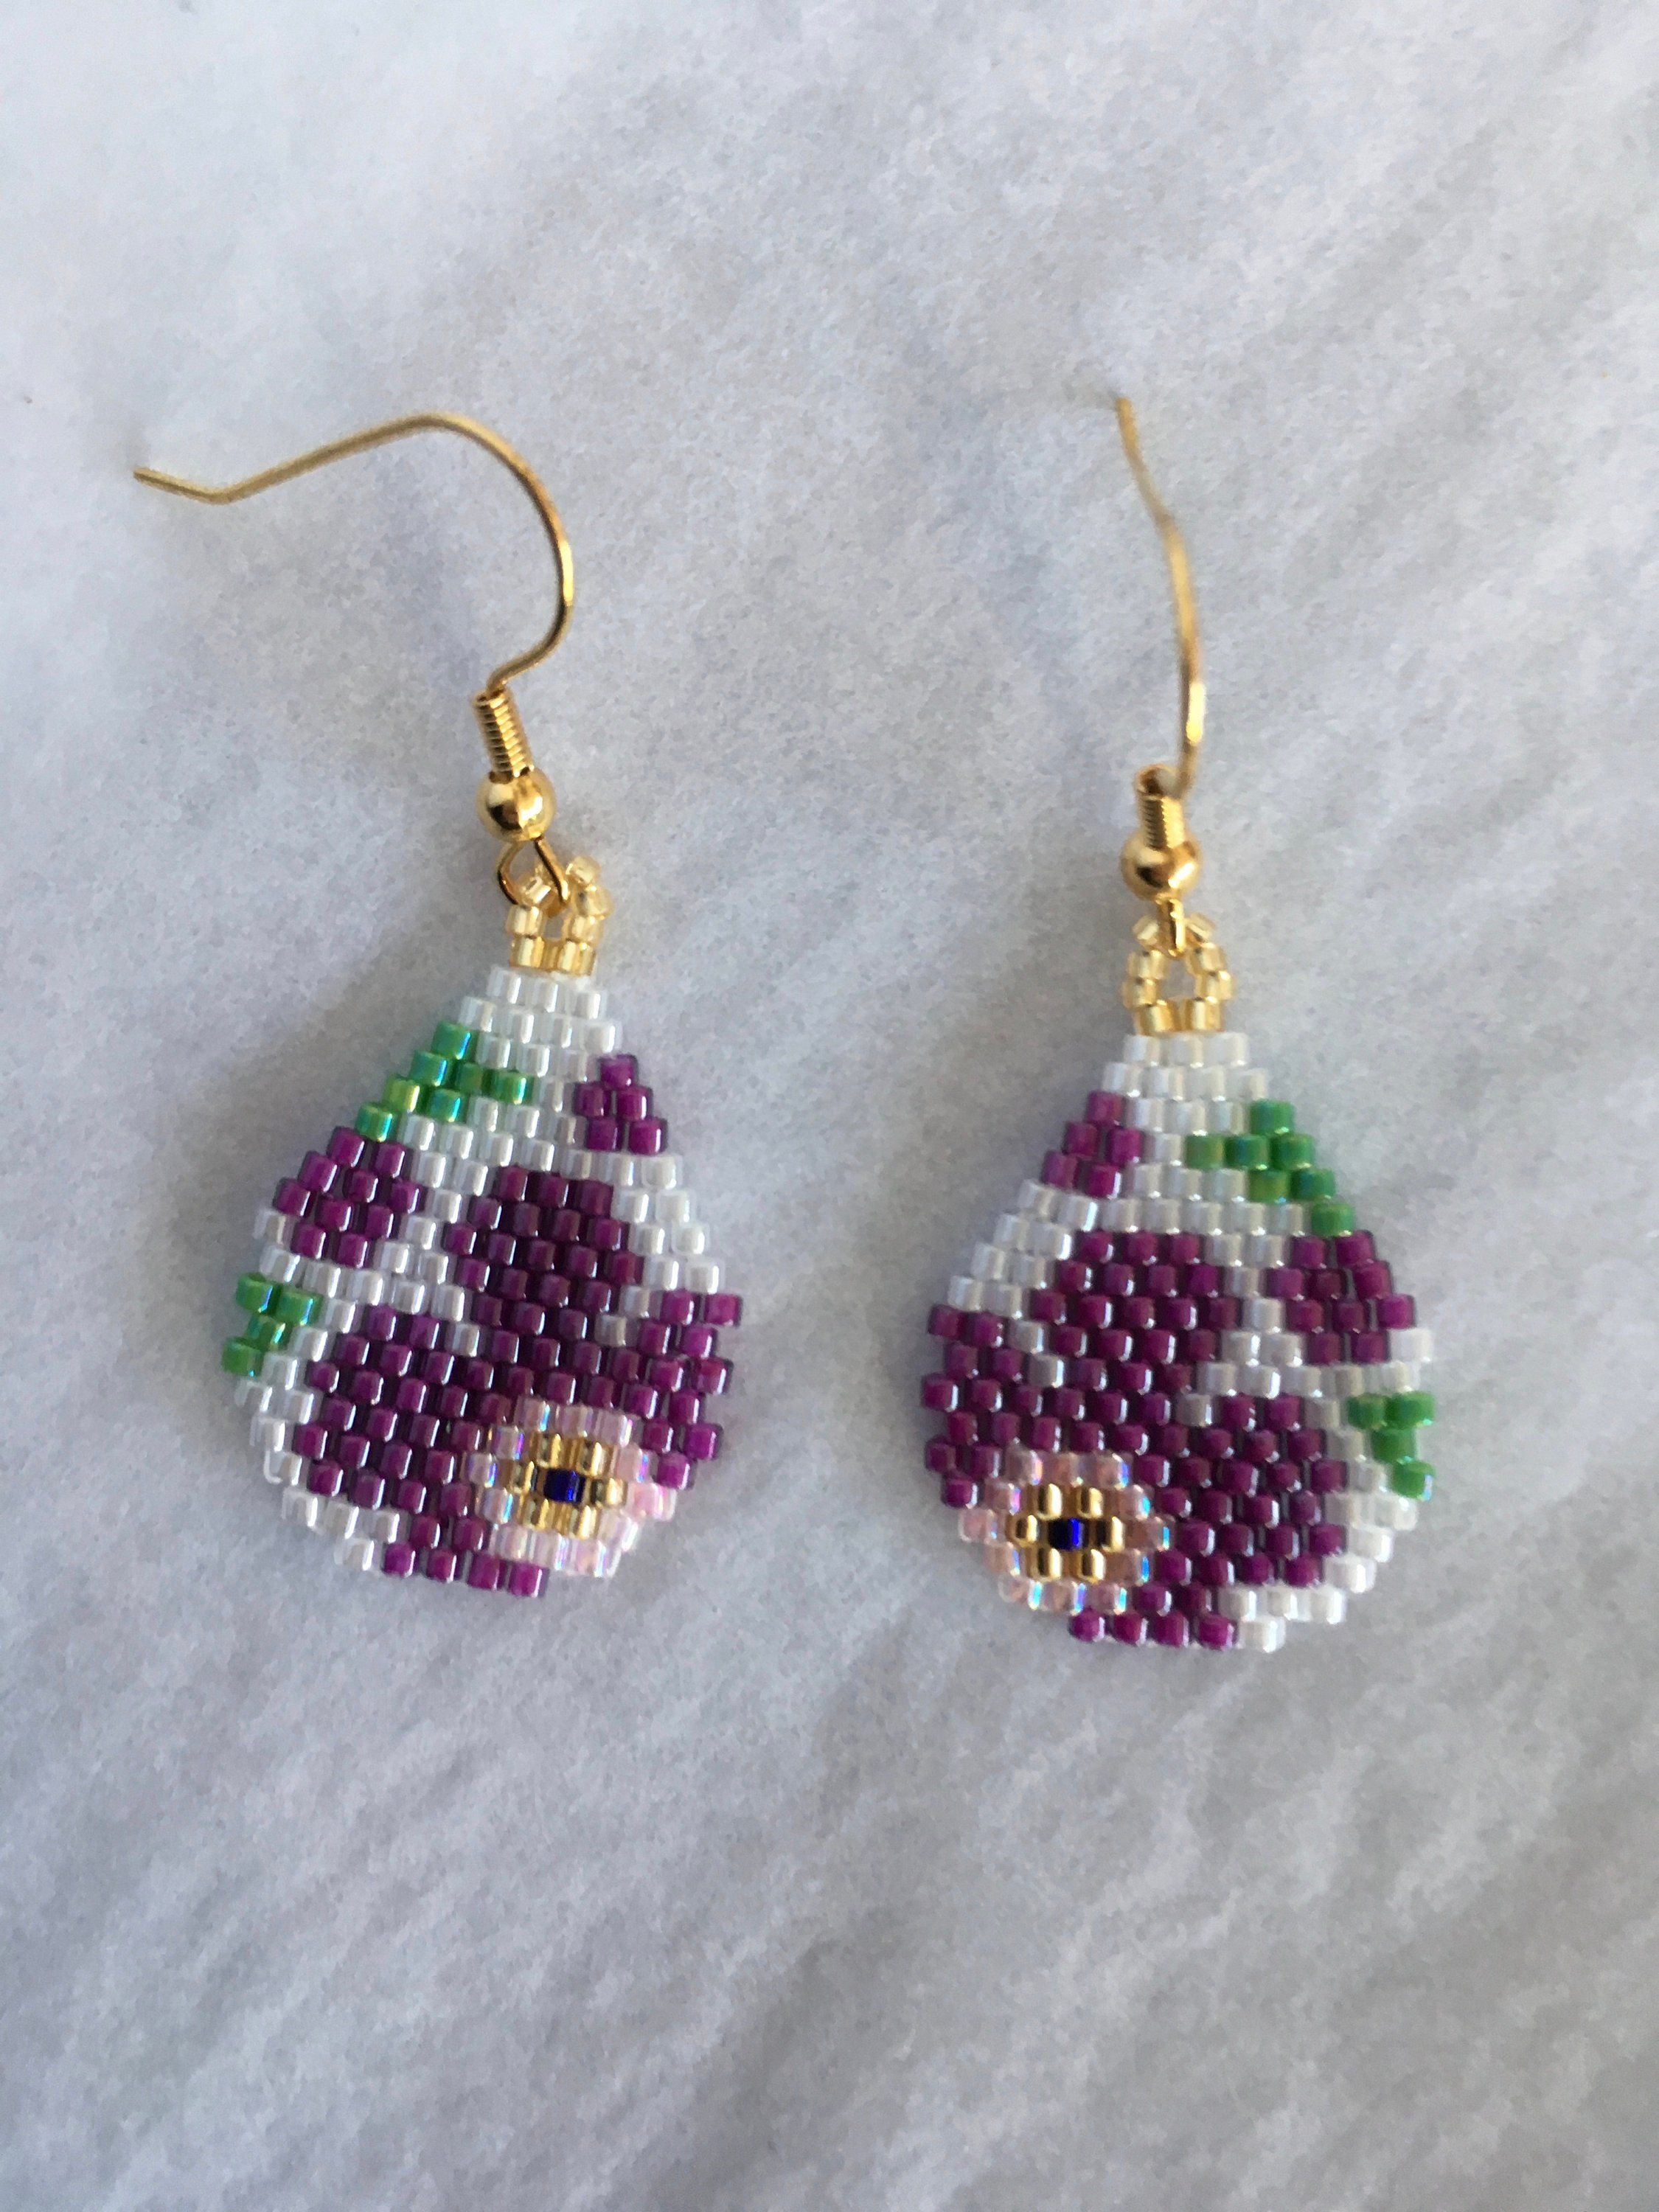 Beaded earrings dangle and drop earrings delica beads flower pattern woven purple flowers green leaves flower earrings pretty earrings #beads